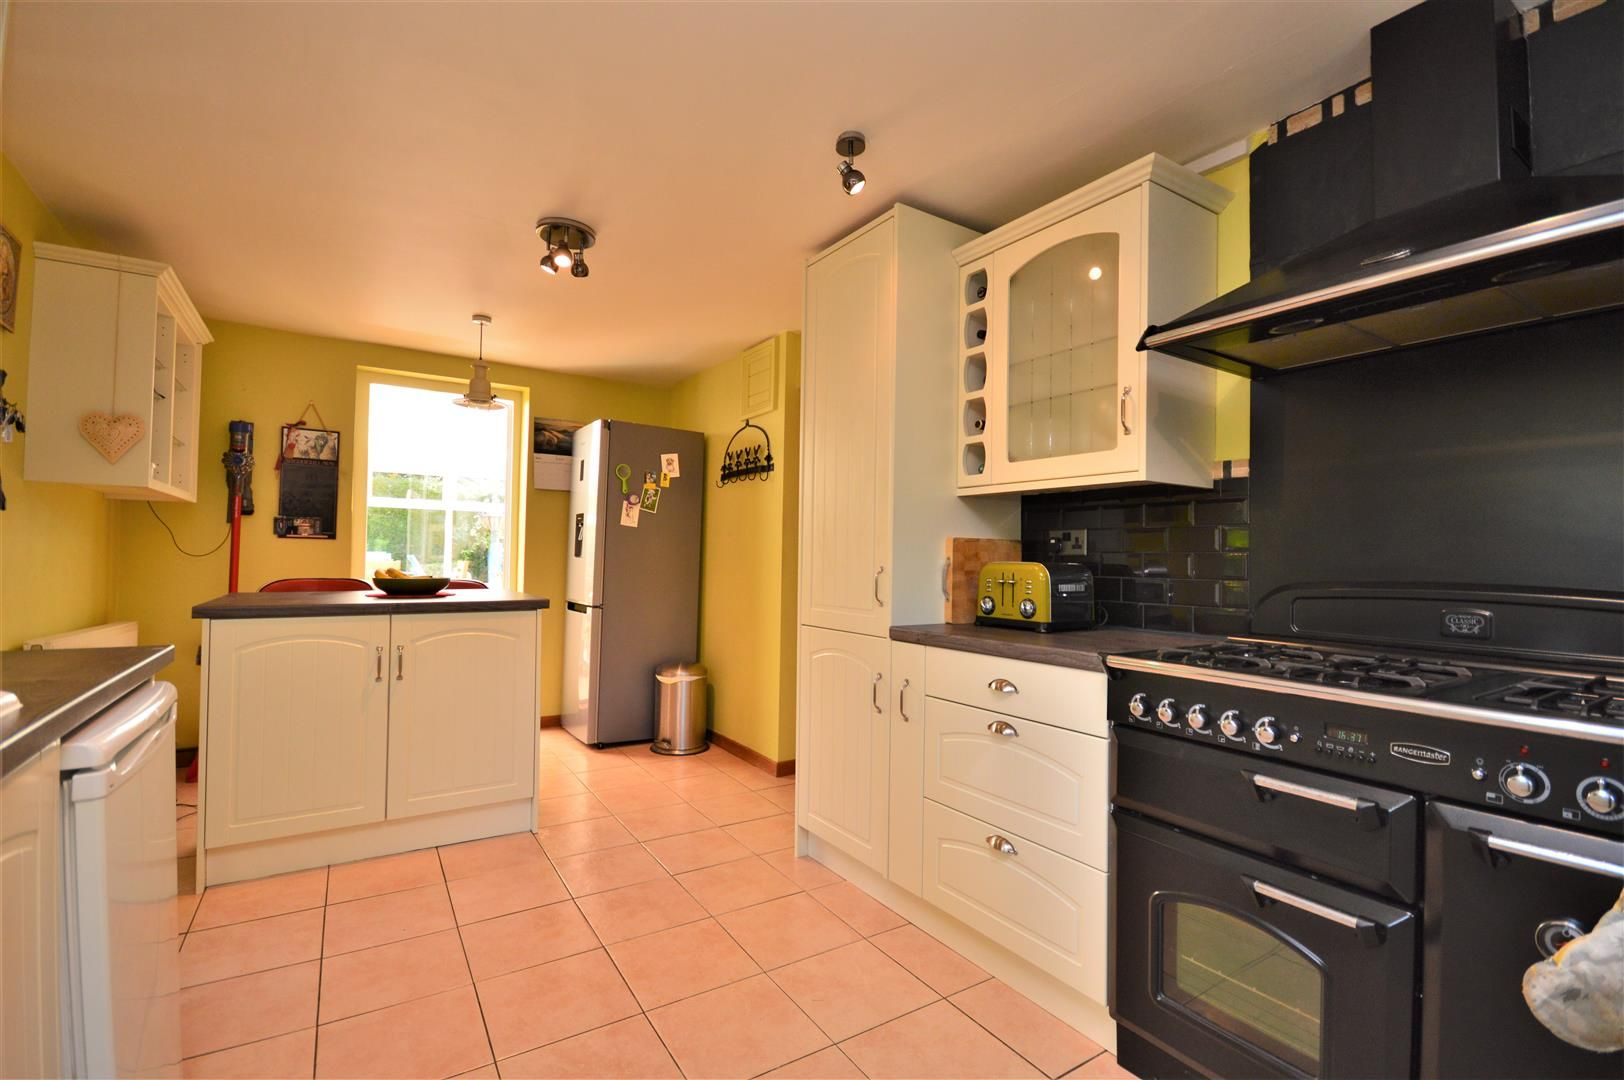 3 bed semi-detached for sale in Stretton Sugwas 17